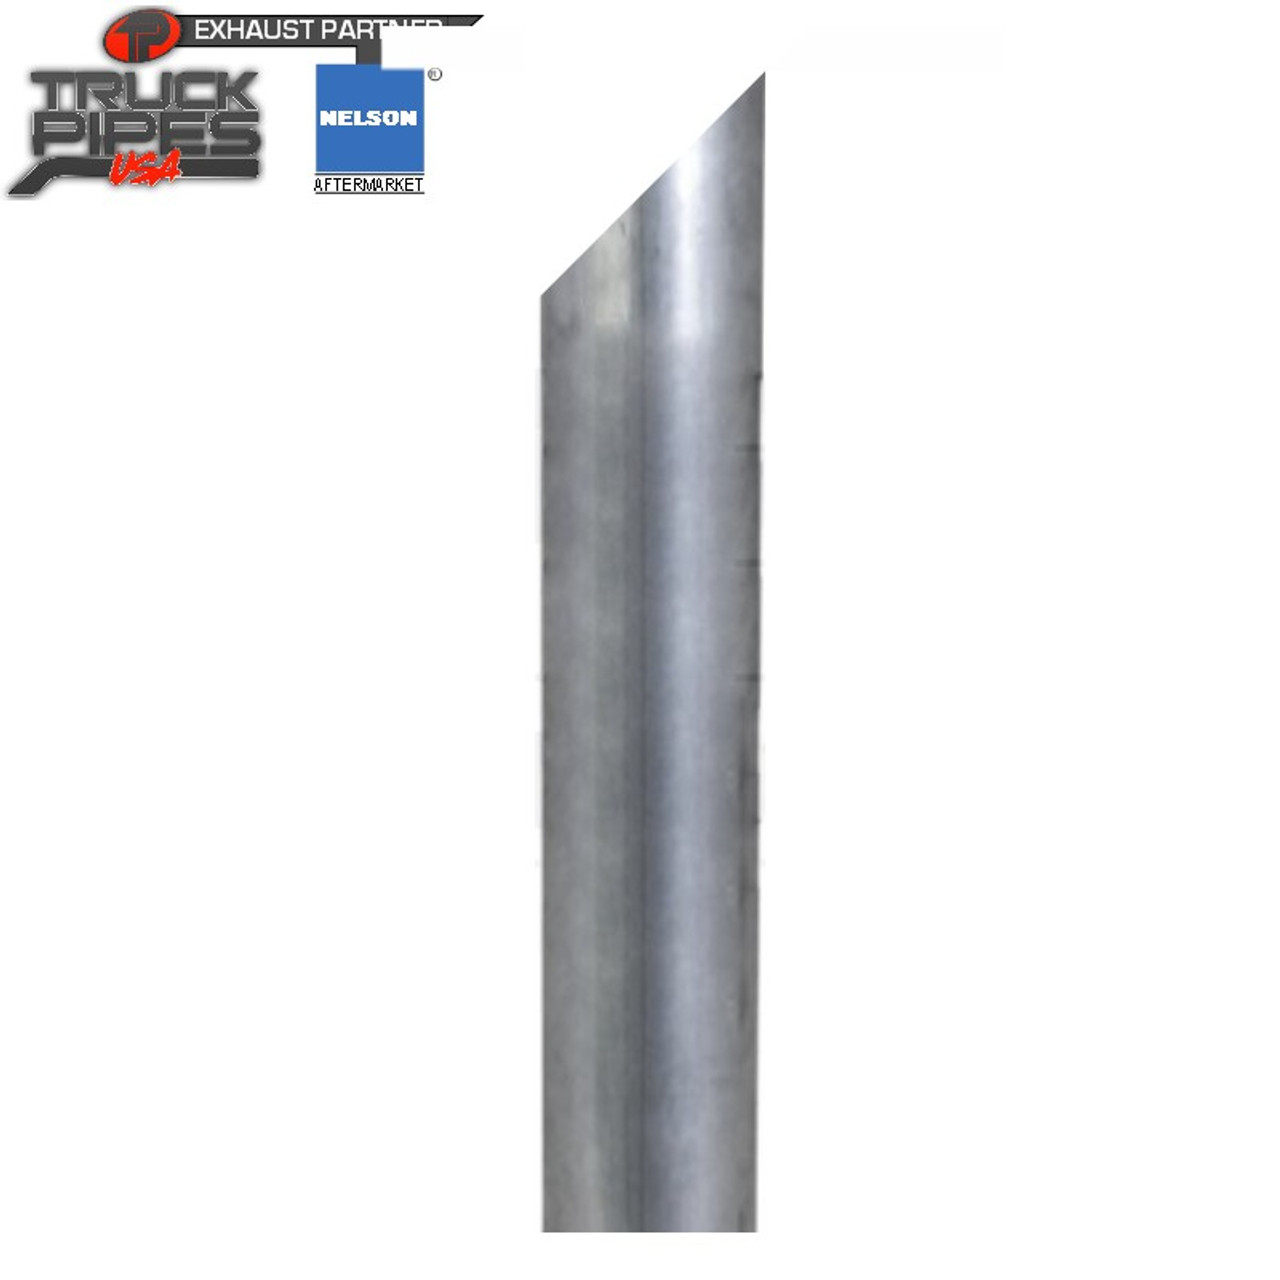 """5"""" x 36"""" Miter Stack Pipe Aluminized OD Bottom Nelson 89993A"""